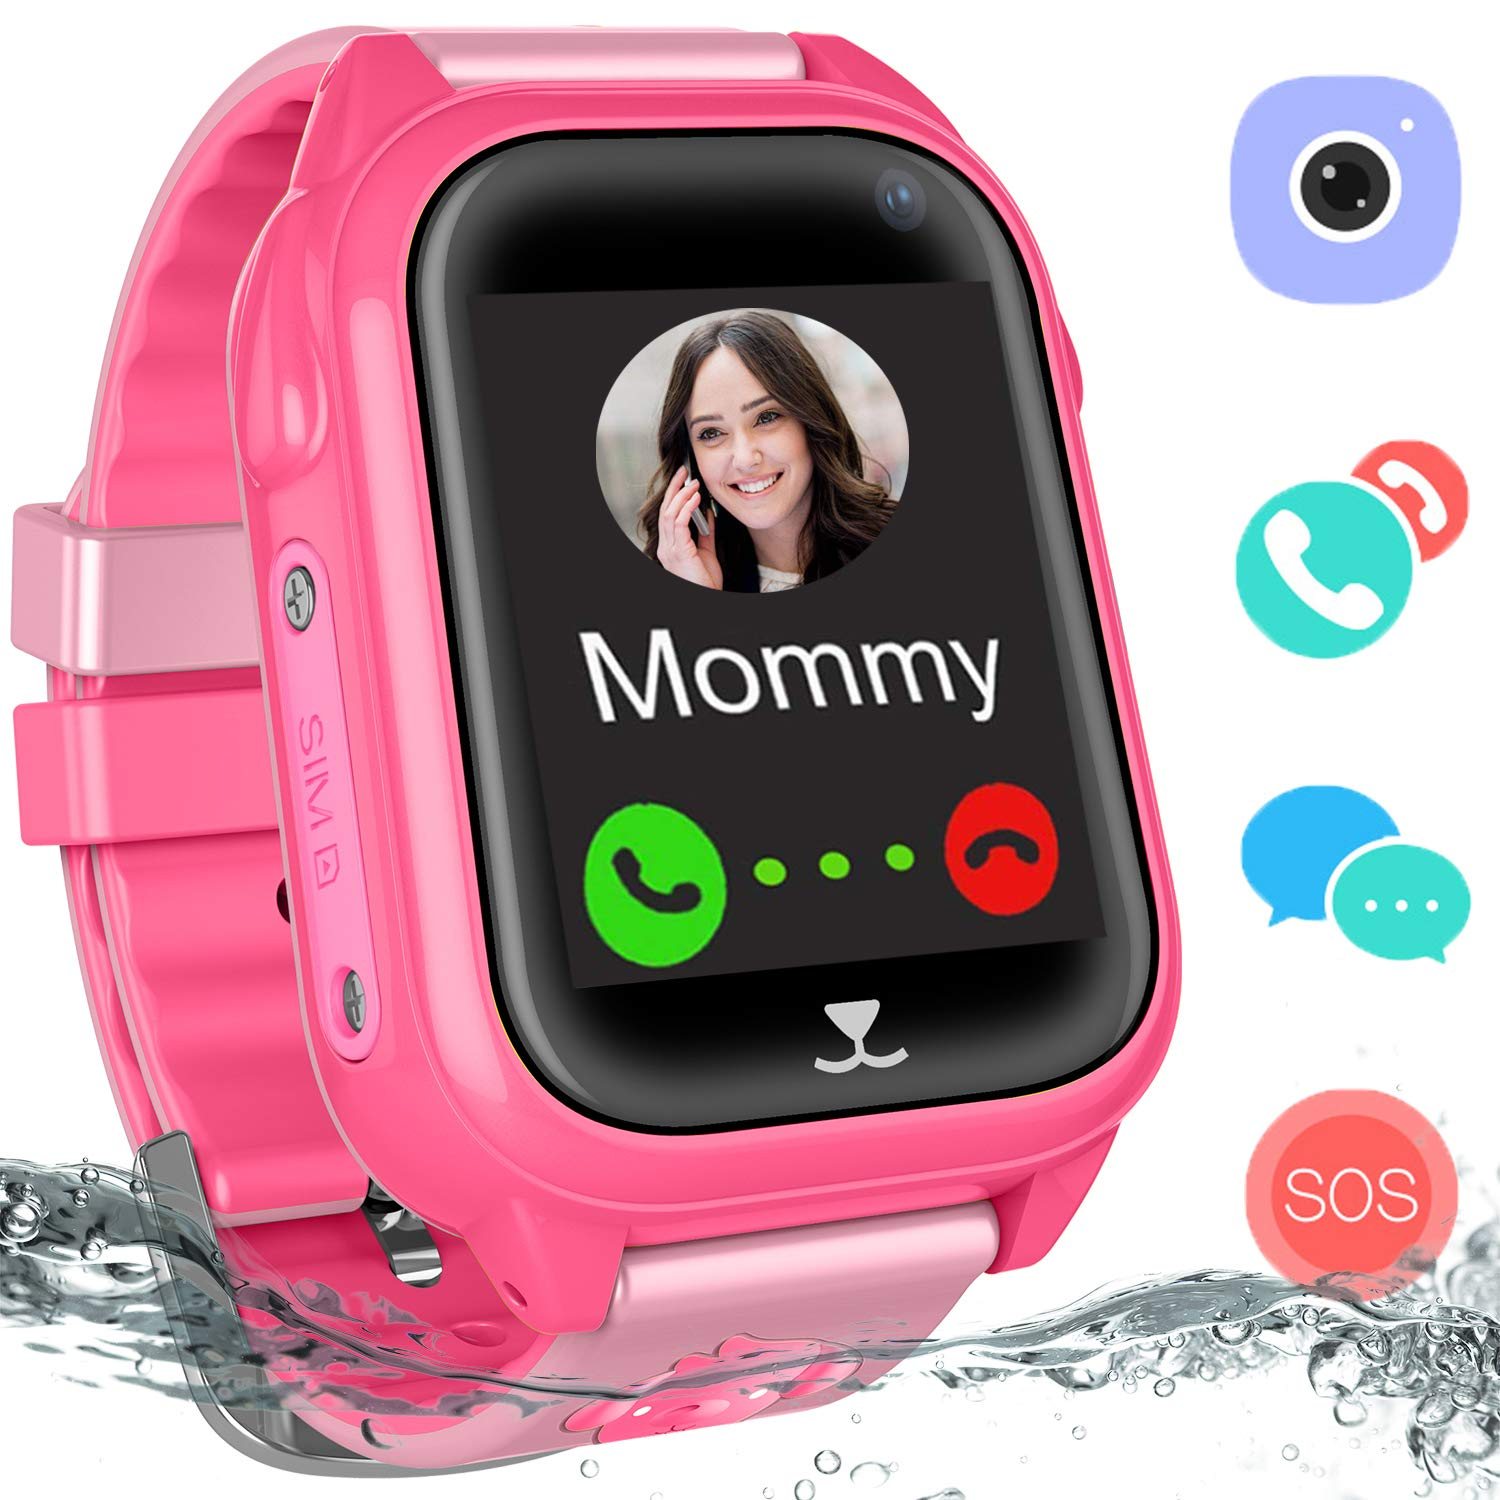 PalmTalkHome Kids Smartwatches for Boys Girls - GPS Fitness Tracker Watch  for Children with Game Phone Voice Chat Alarm Clock Camera Flashlight